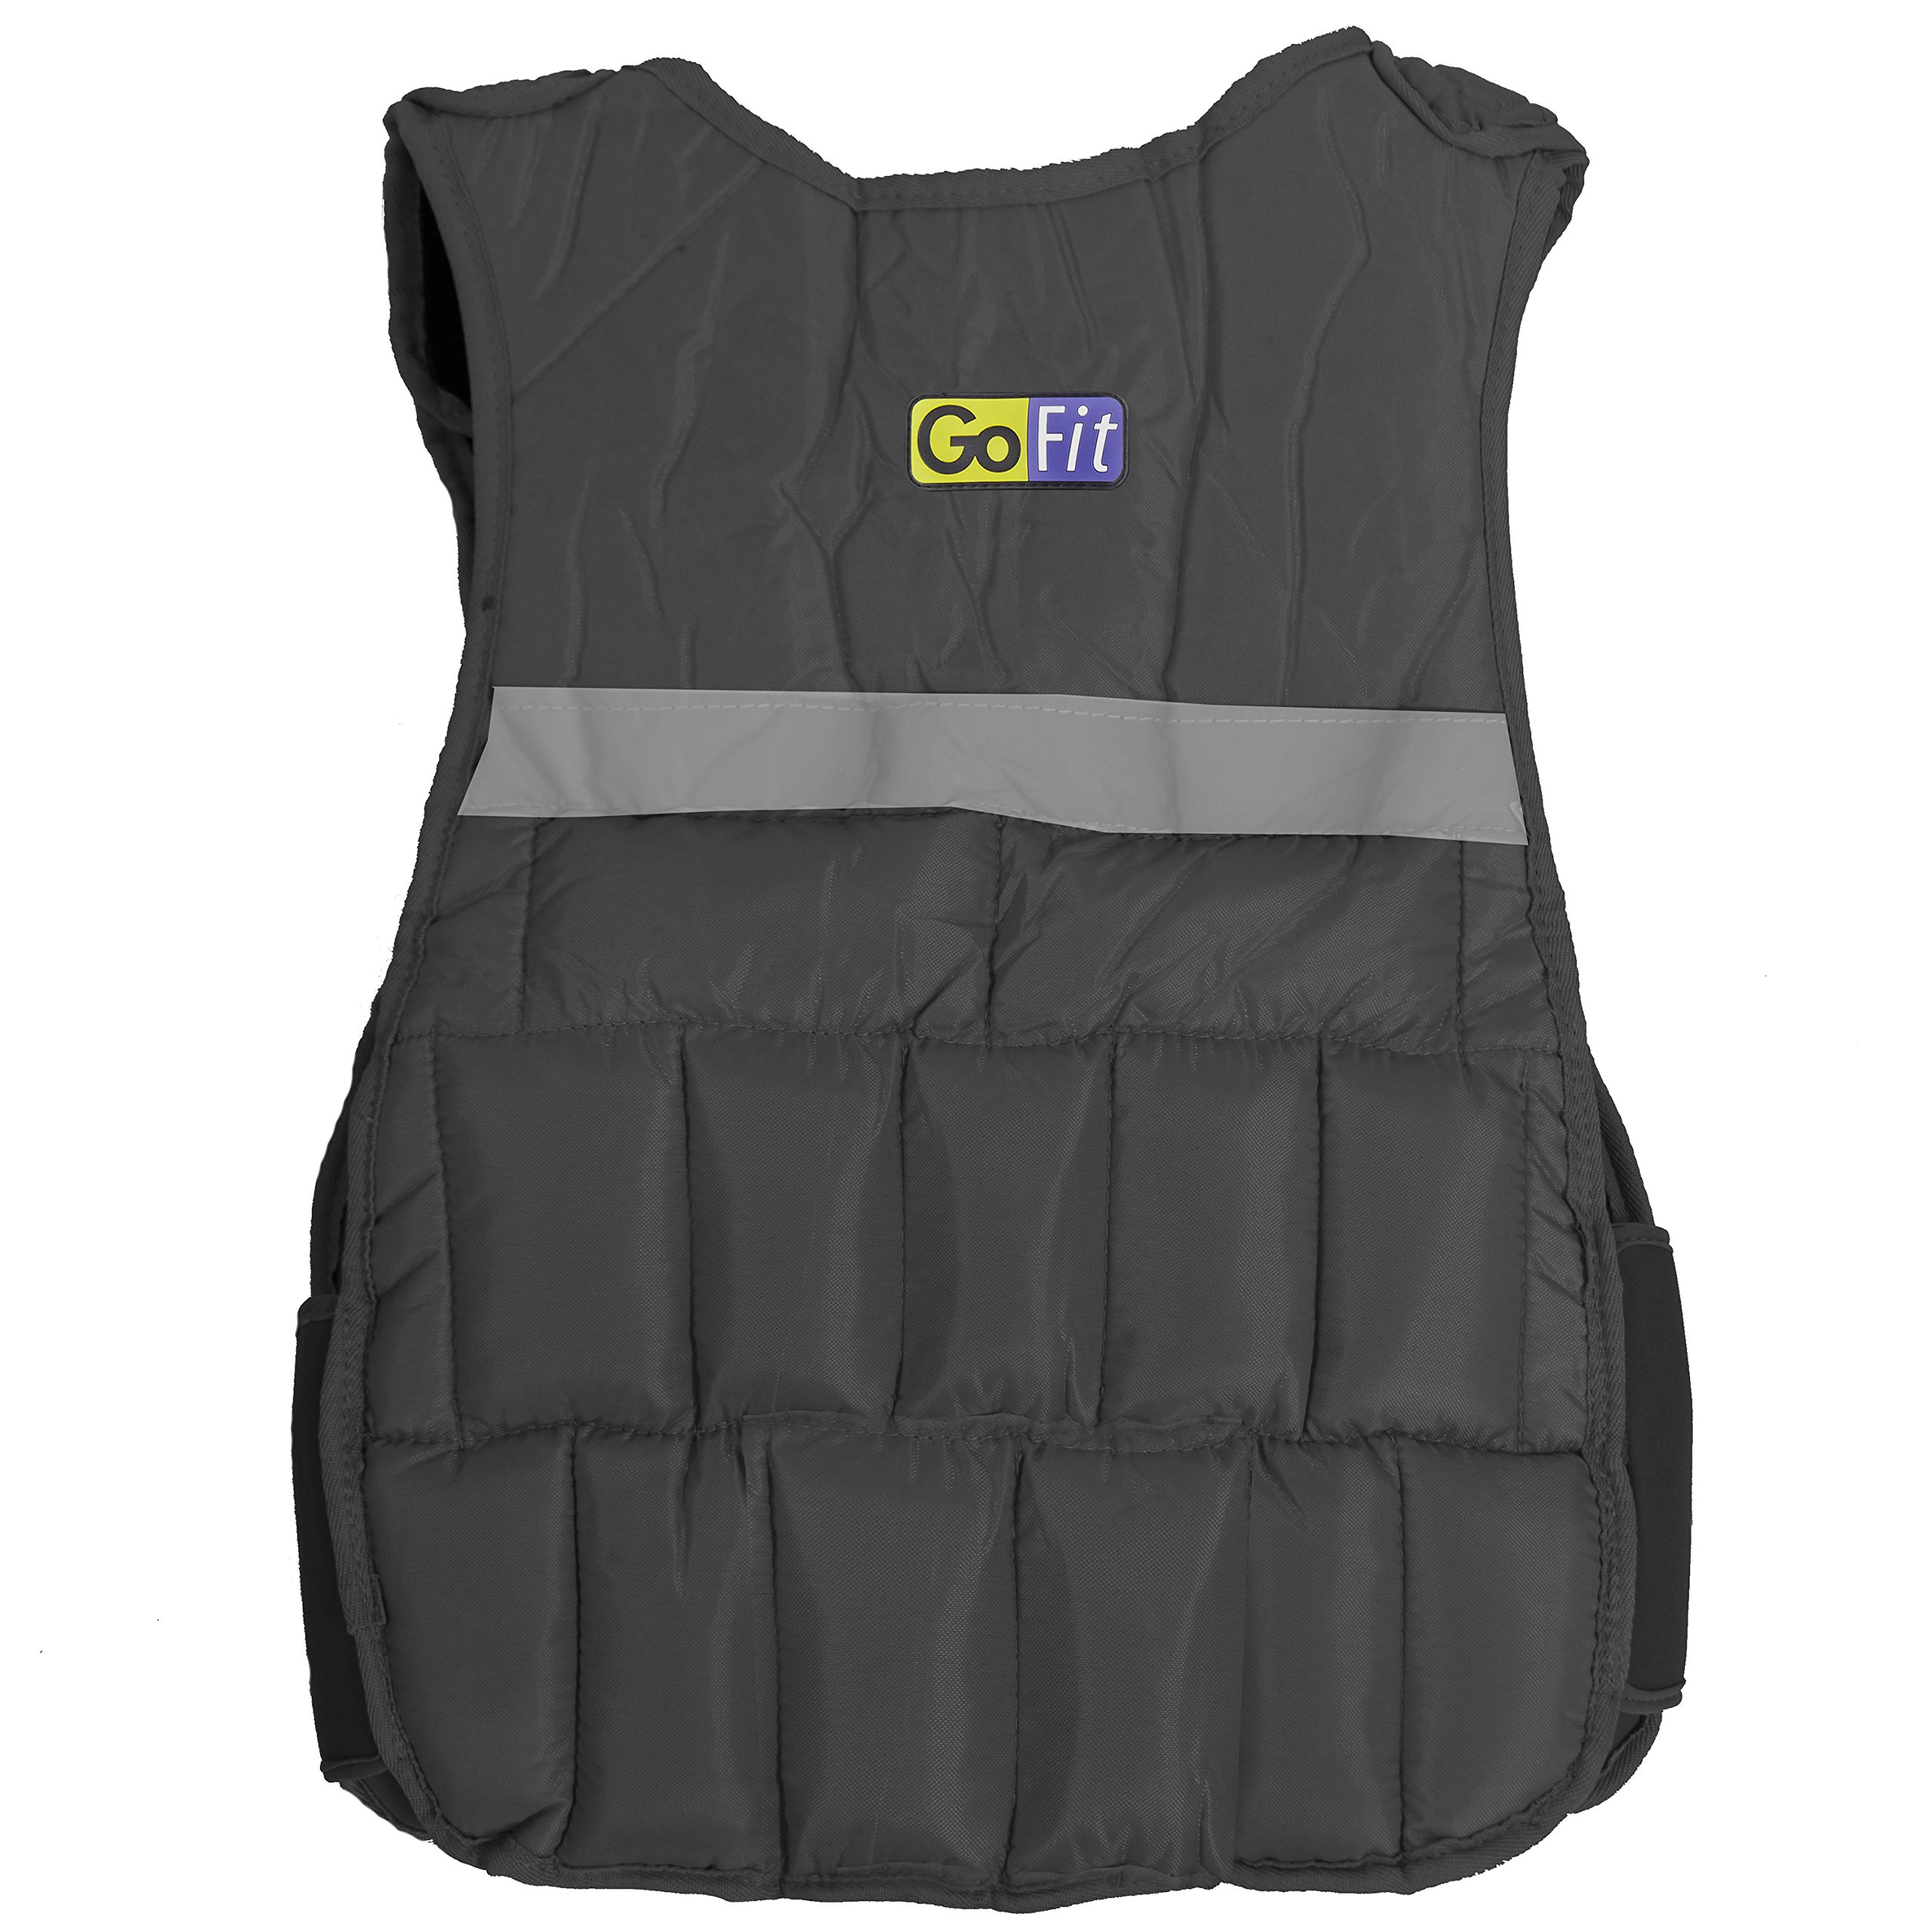 GoFit Padded Adjustable Weighted Vest - Resistance Training